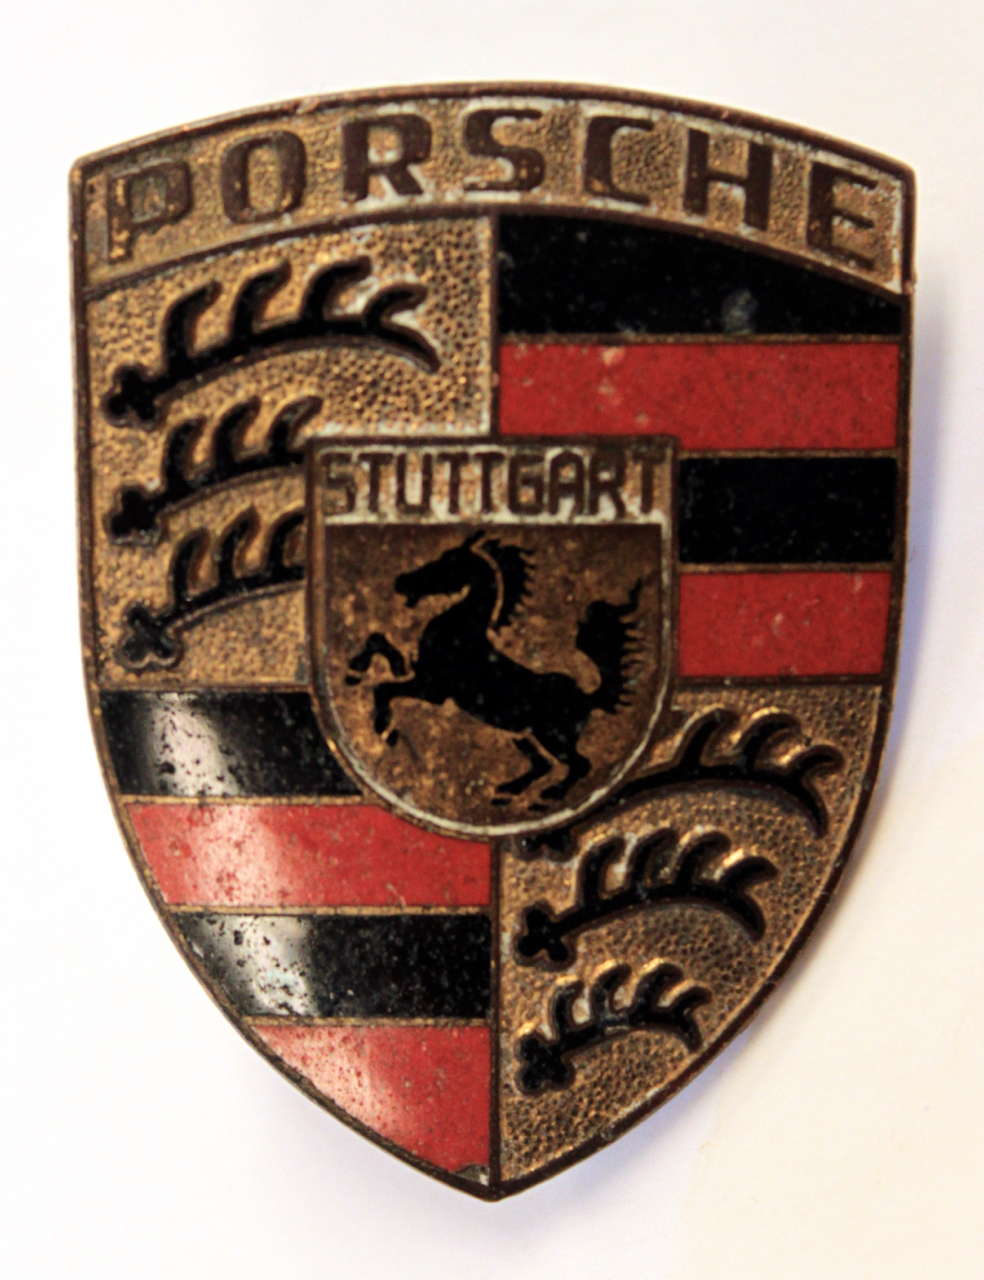 Vintage Porsche Enamel Car Badge Automobilia Car Badges